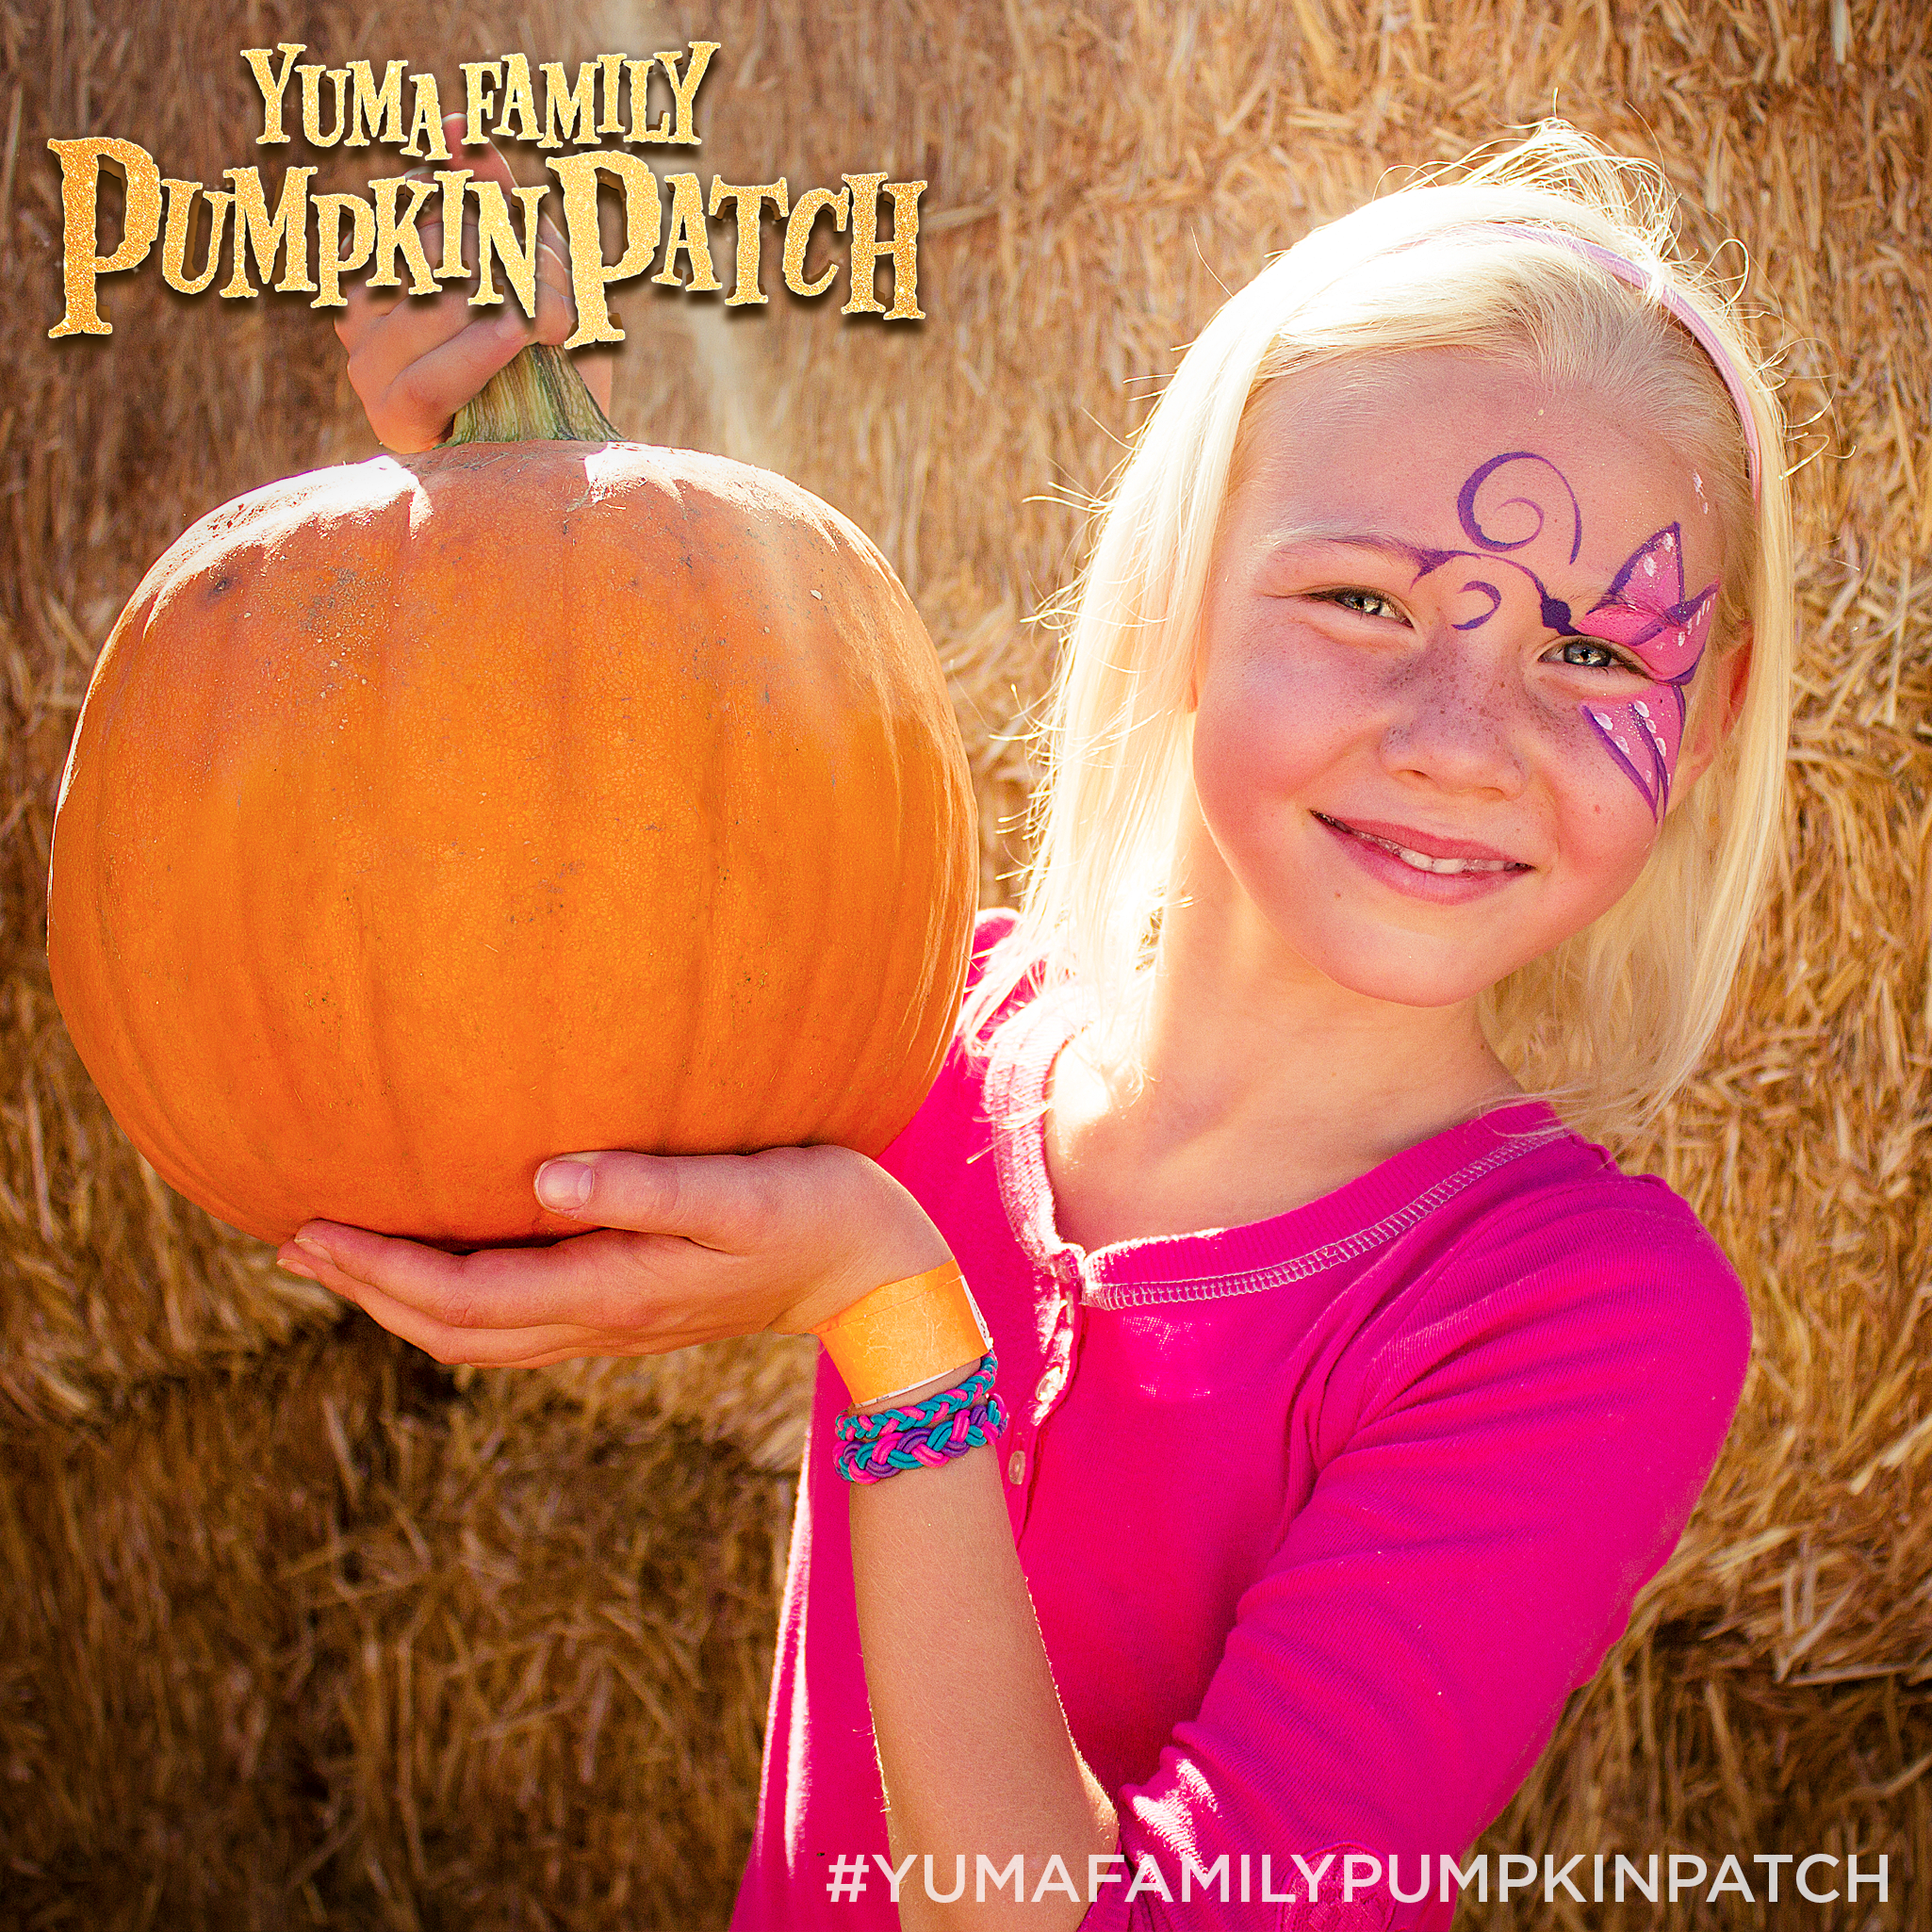 This is a photo of a smiling little girl wearing a bright pink shirt who was at the Yuma Family Pumpkin Patch which is hosted at Champion Church!